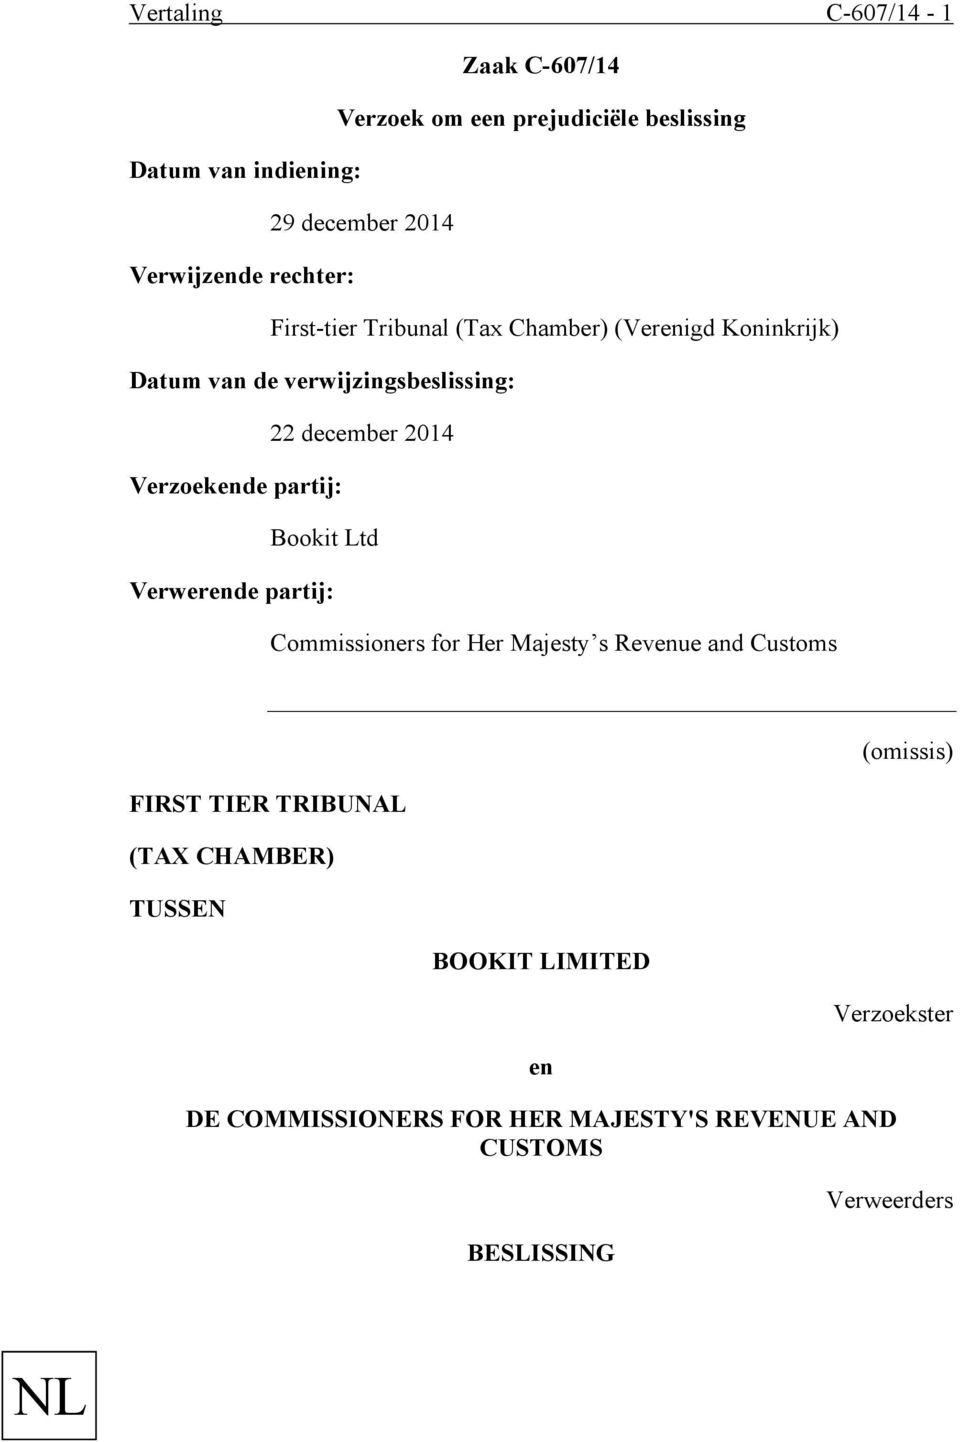 Verzoekende partij: Bookit Ltd Verwerende partij: Commissioners for Her Majesty s Revenue and Customs FIRST TIER TRIBUNAL (TAX